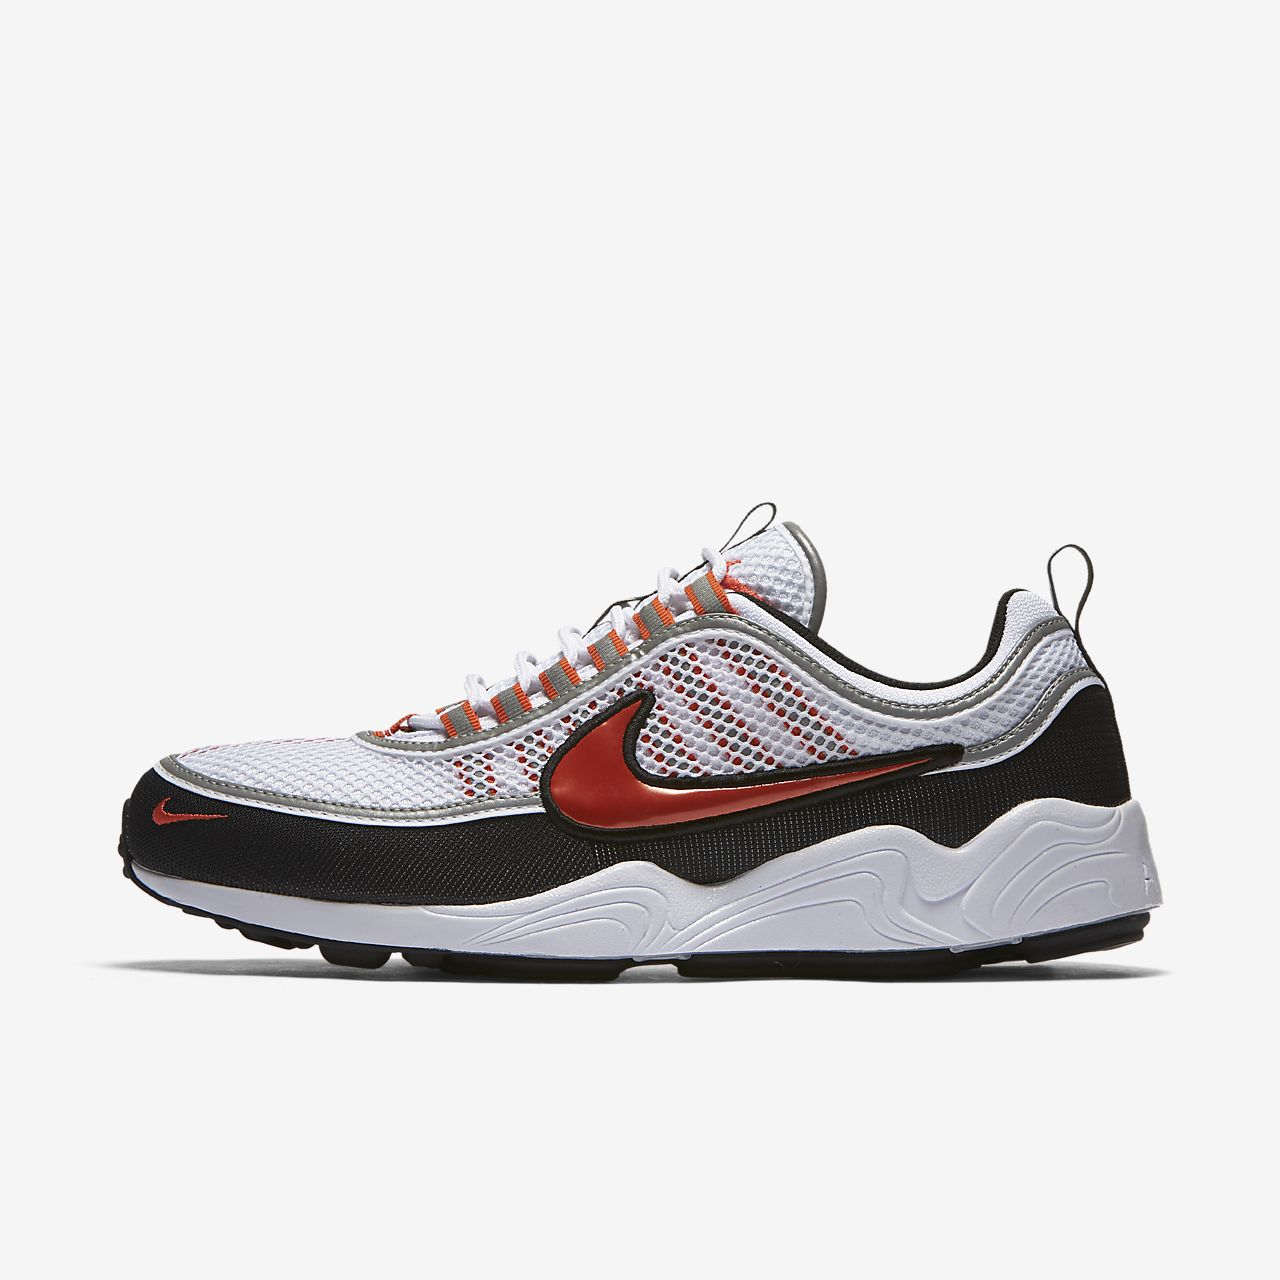 nike air zoom spiridon 39 16 men 39 s shoe. Black Bedroom Furniture Sets. Home Design Ideas